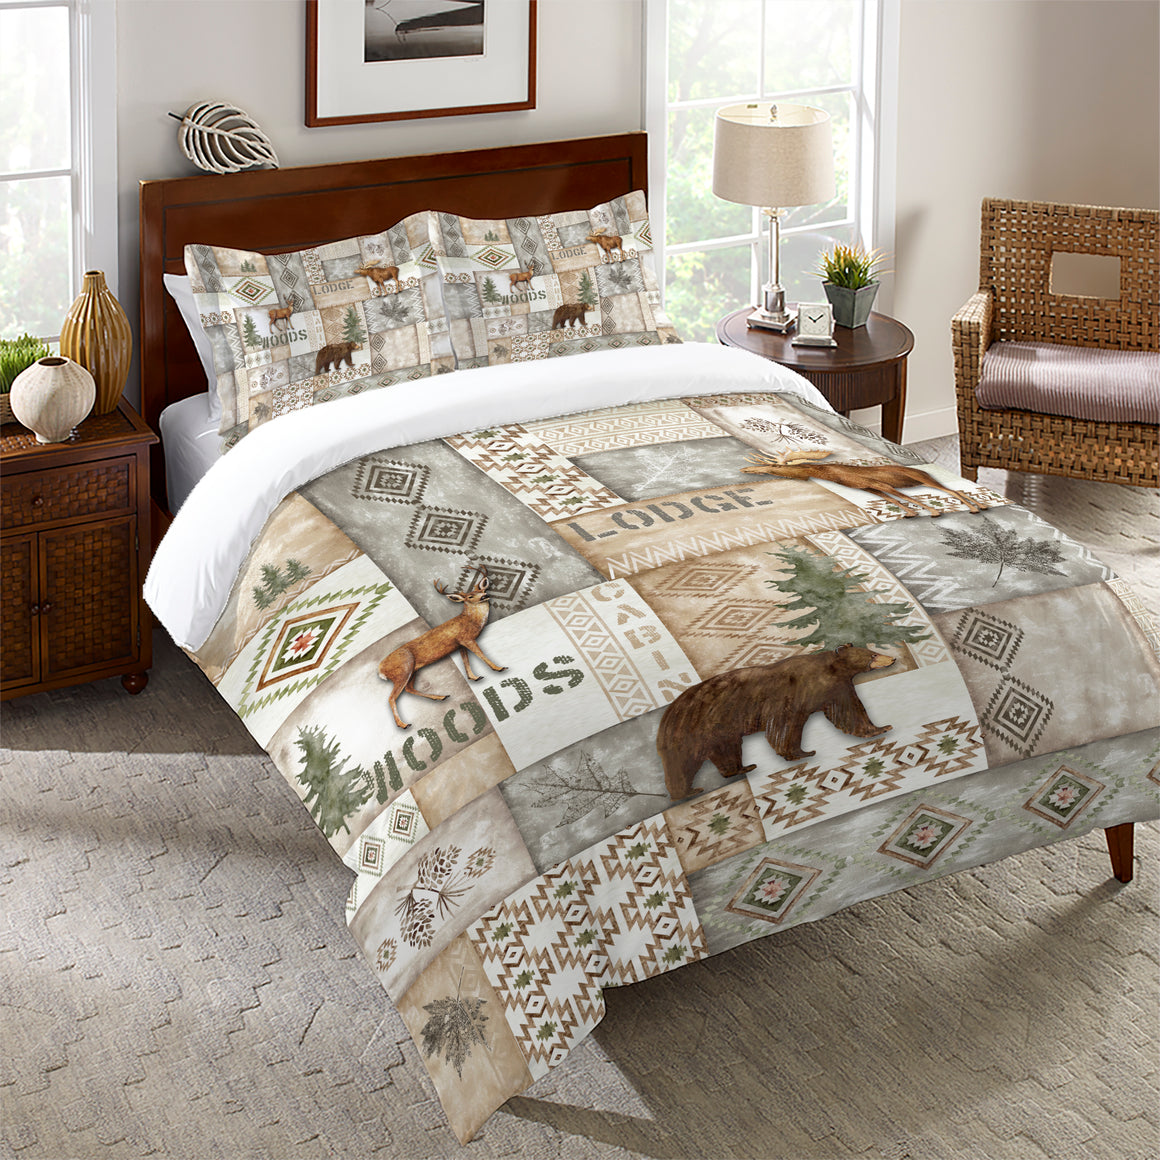 Trail Ridge Gray Comforter